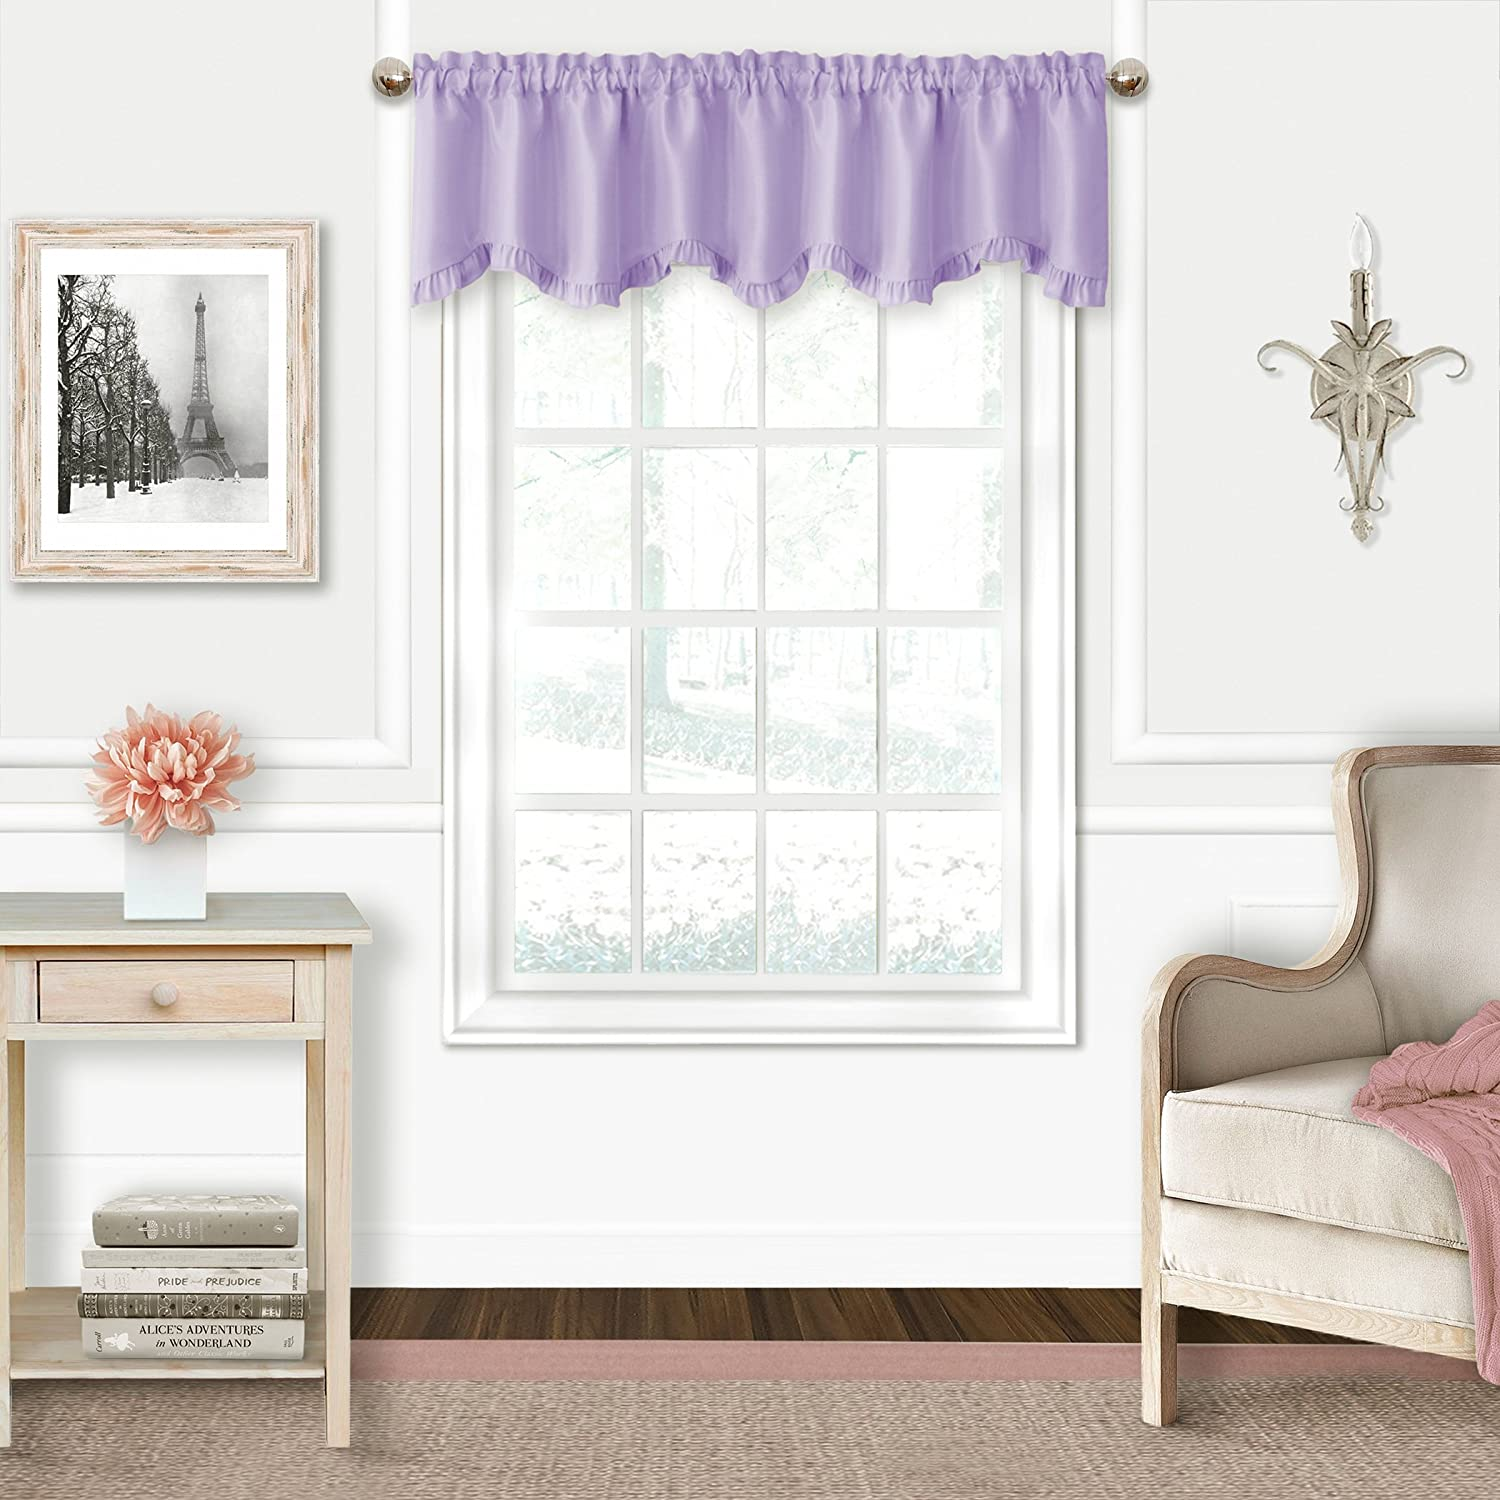 Elrene Adaline Kids Pastel Faux Silk Solid Color Blackout Room Darkening Thermal Insulating Window Curtain/Single Scalloped Ruffled Valance by, 52 Inch Wide X 15 Inch Deep, Lavender